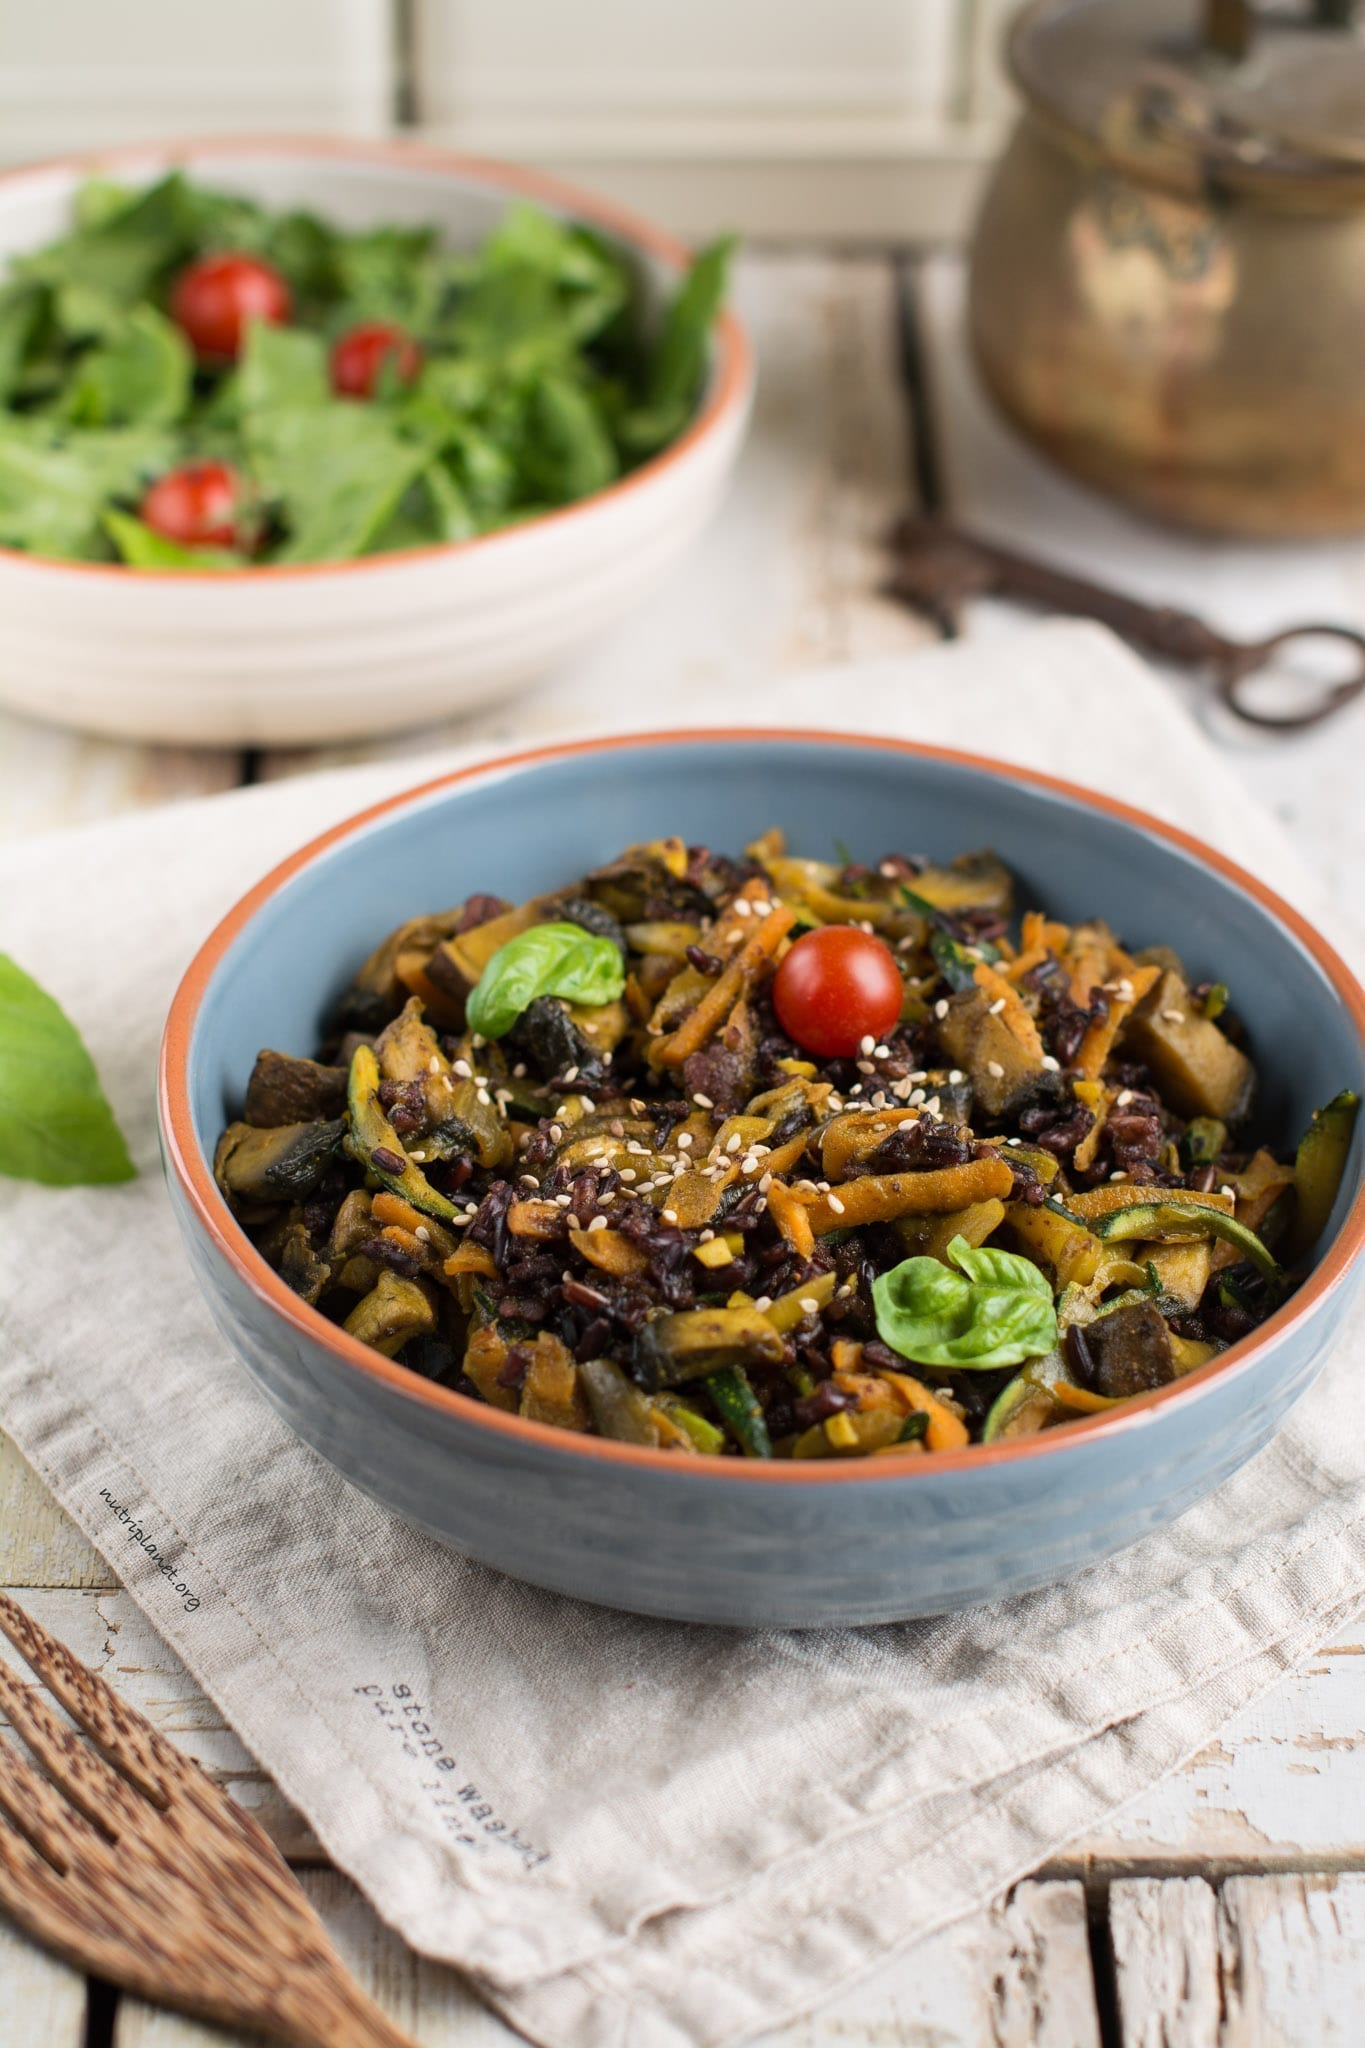 Quick and Easy Veggie Stir Fry with Mushrooms